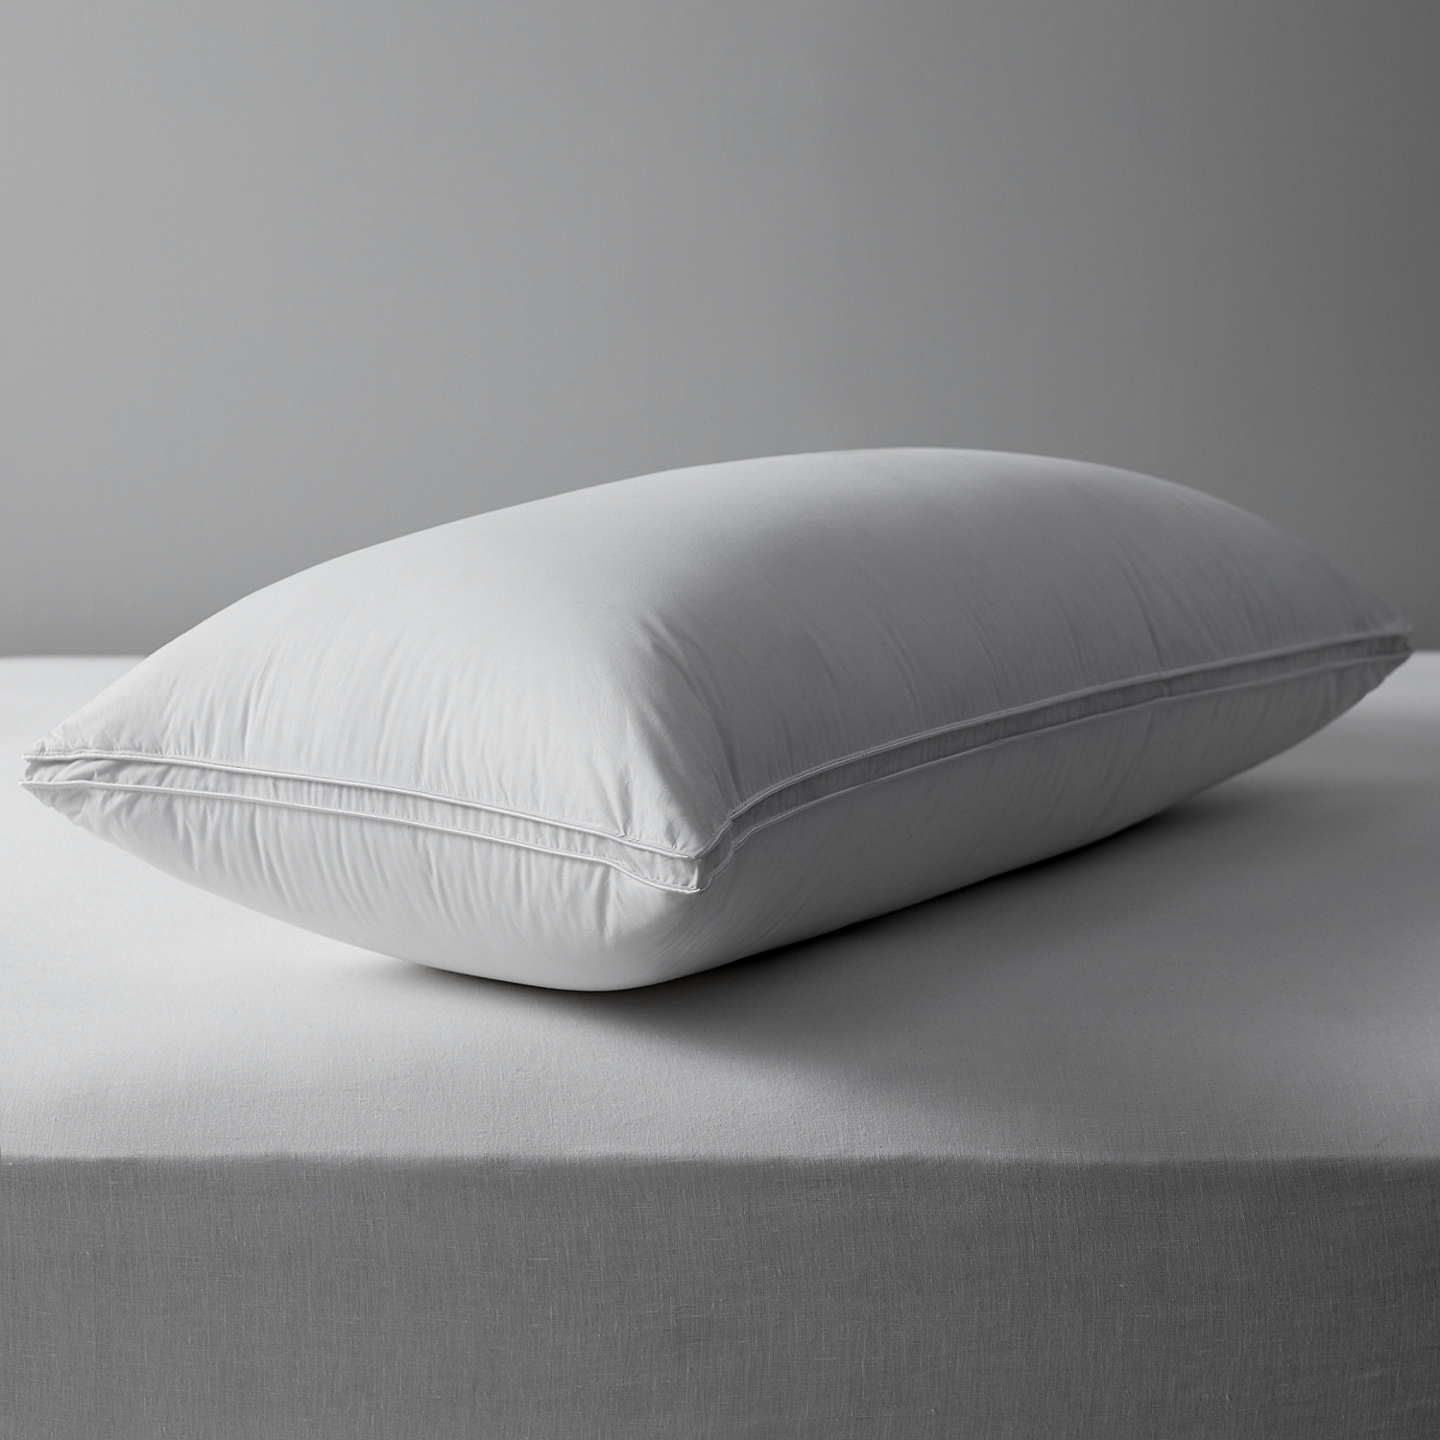 BuyJohn Lewis The Ultimate Collection British Goose Down Kingsize Pillow, Medium/Firm Online at johnlewis.com